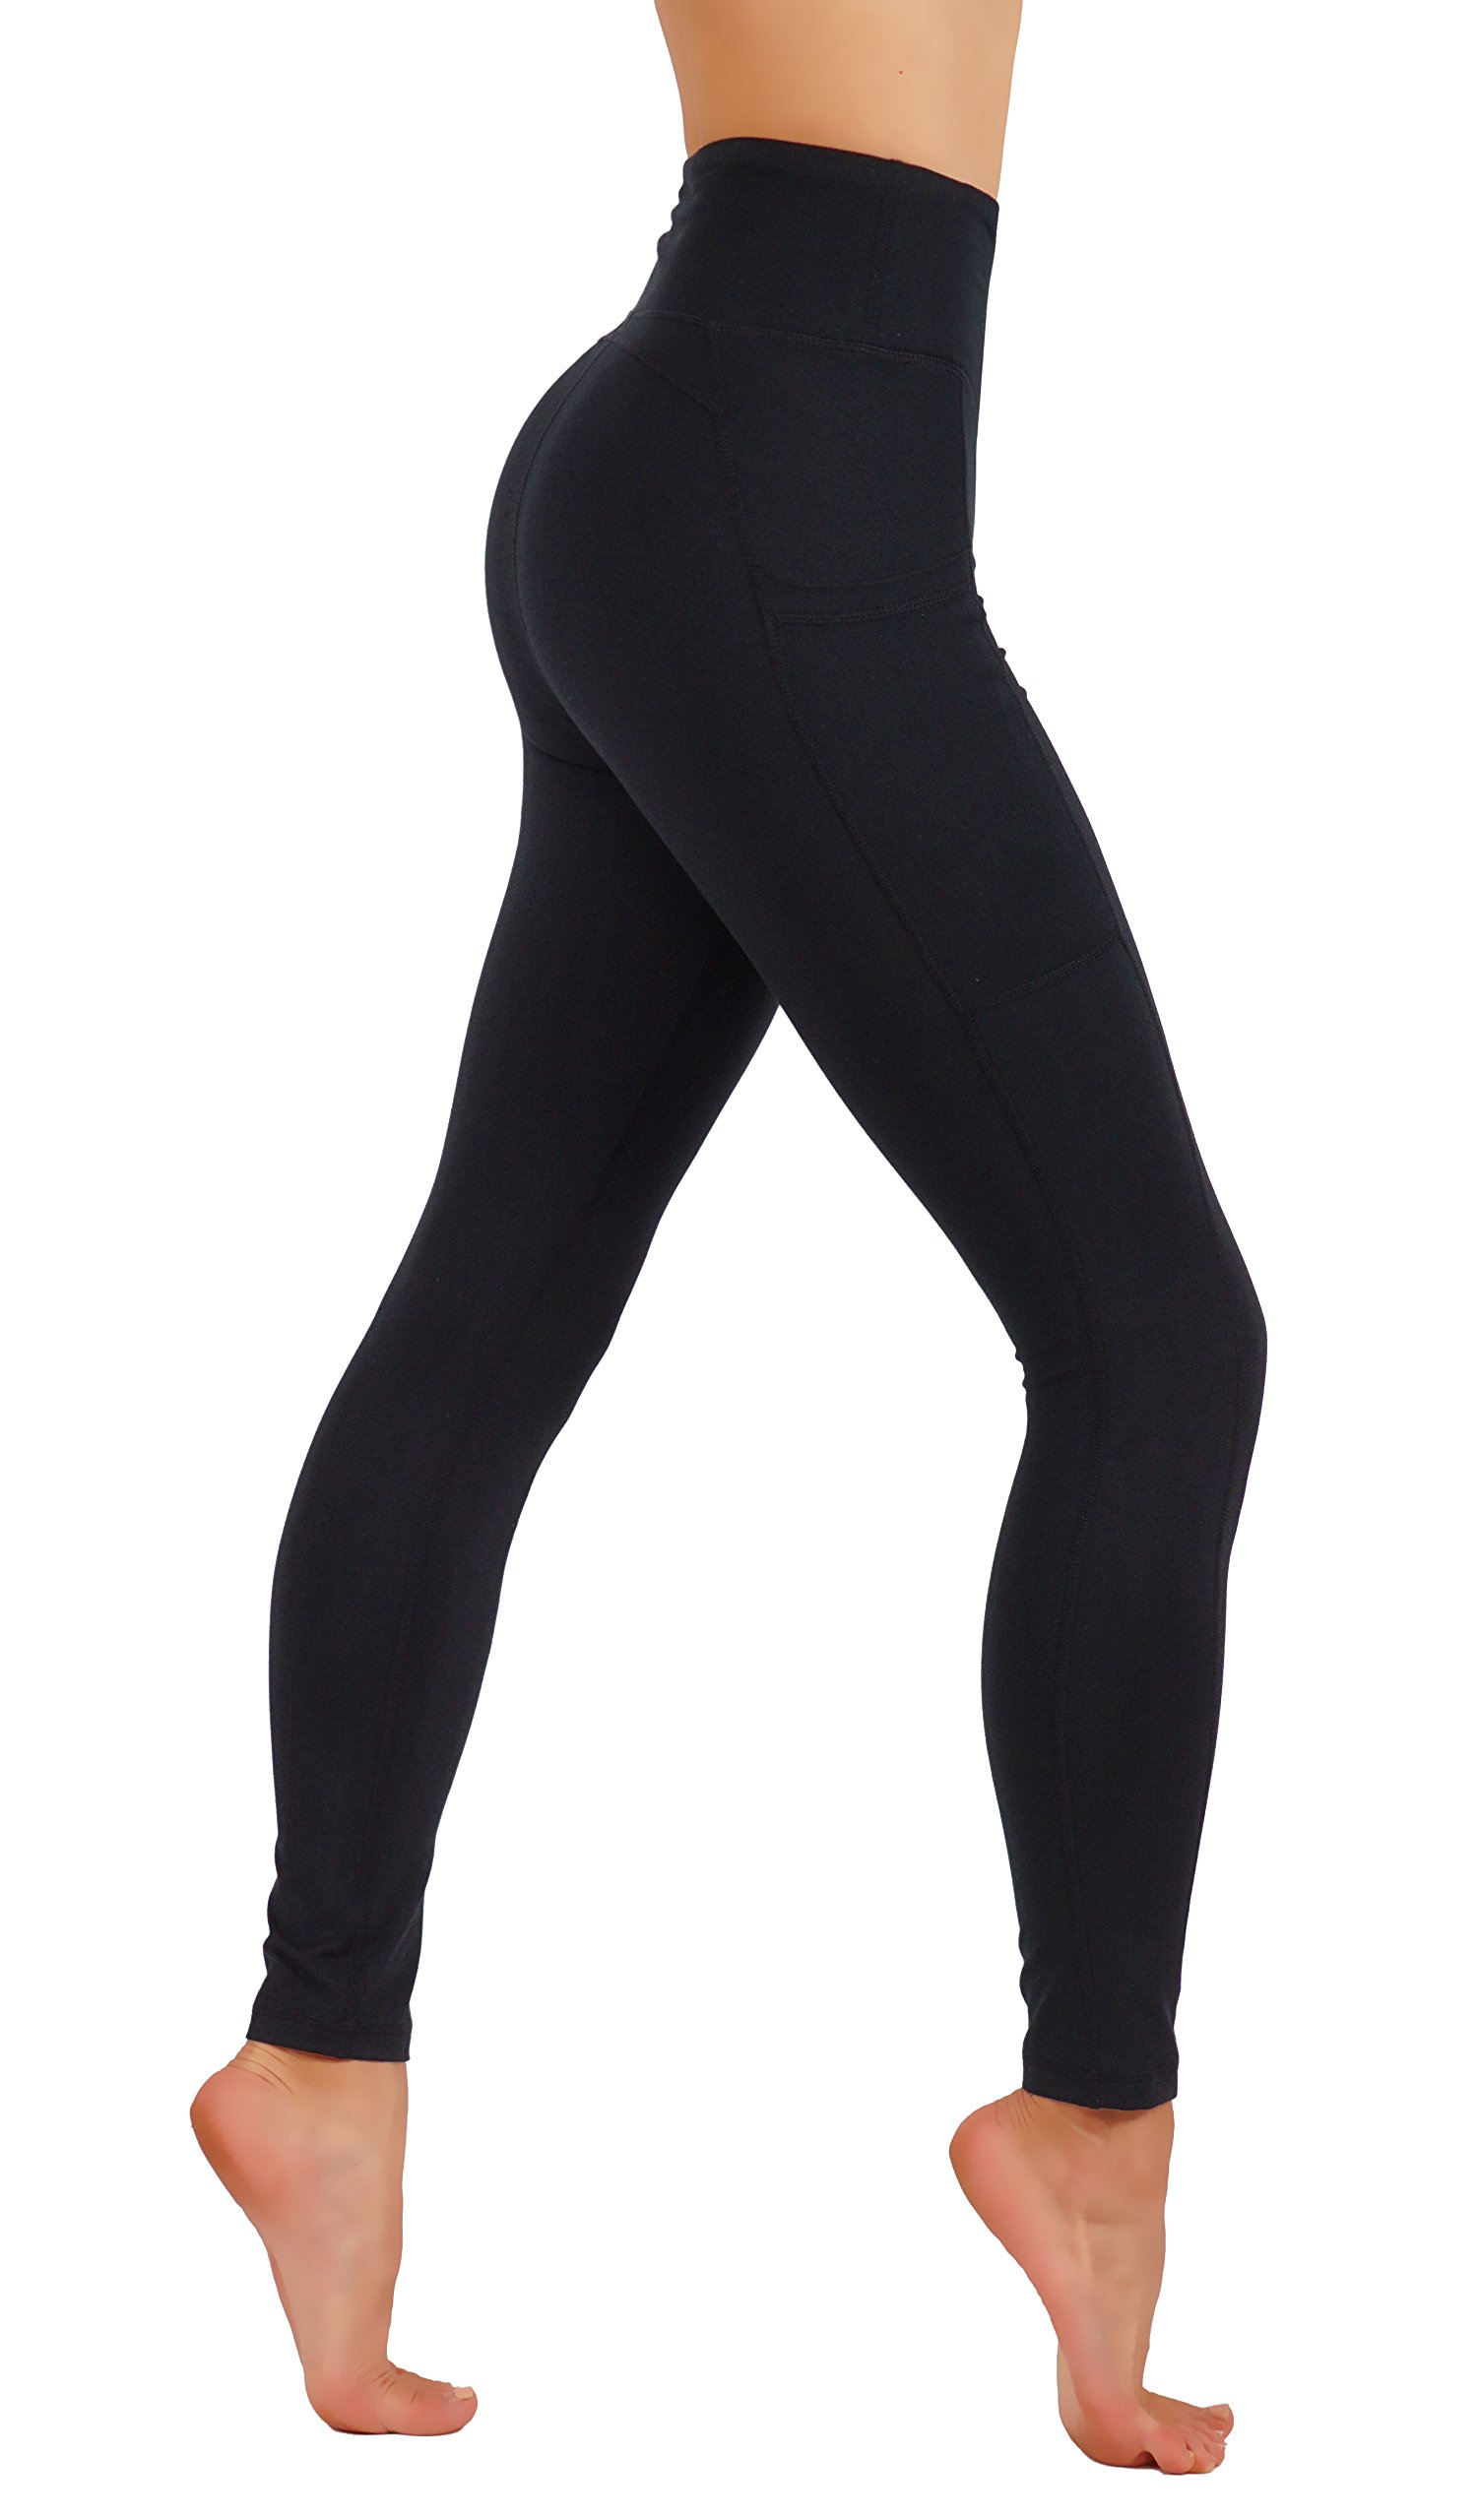 CodeFit Yoga Pants Dry-Fit High Waist with Both Side Deeps Pockets Full Length Workout Running Leggings (S USA 4-6, CF100-BLK)